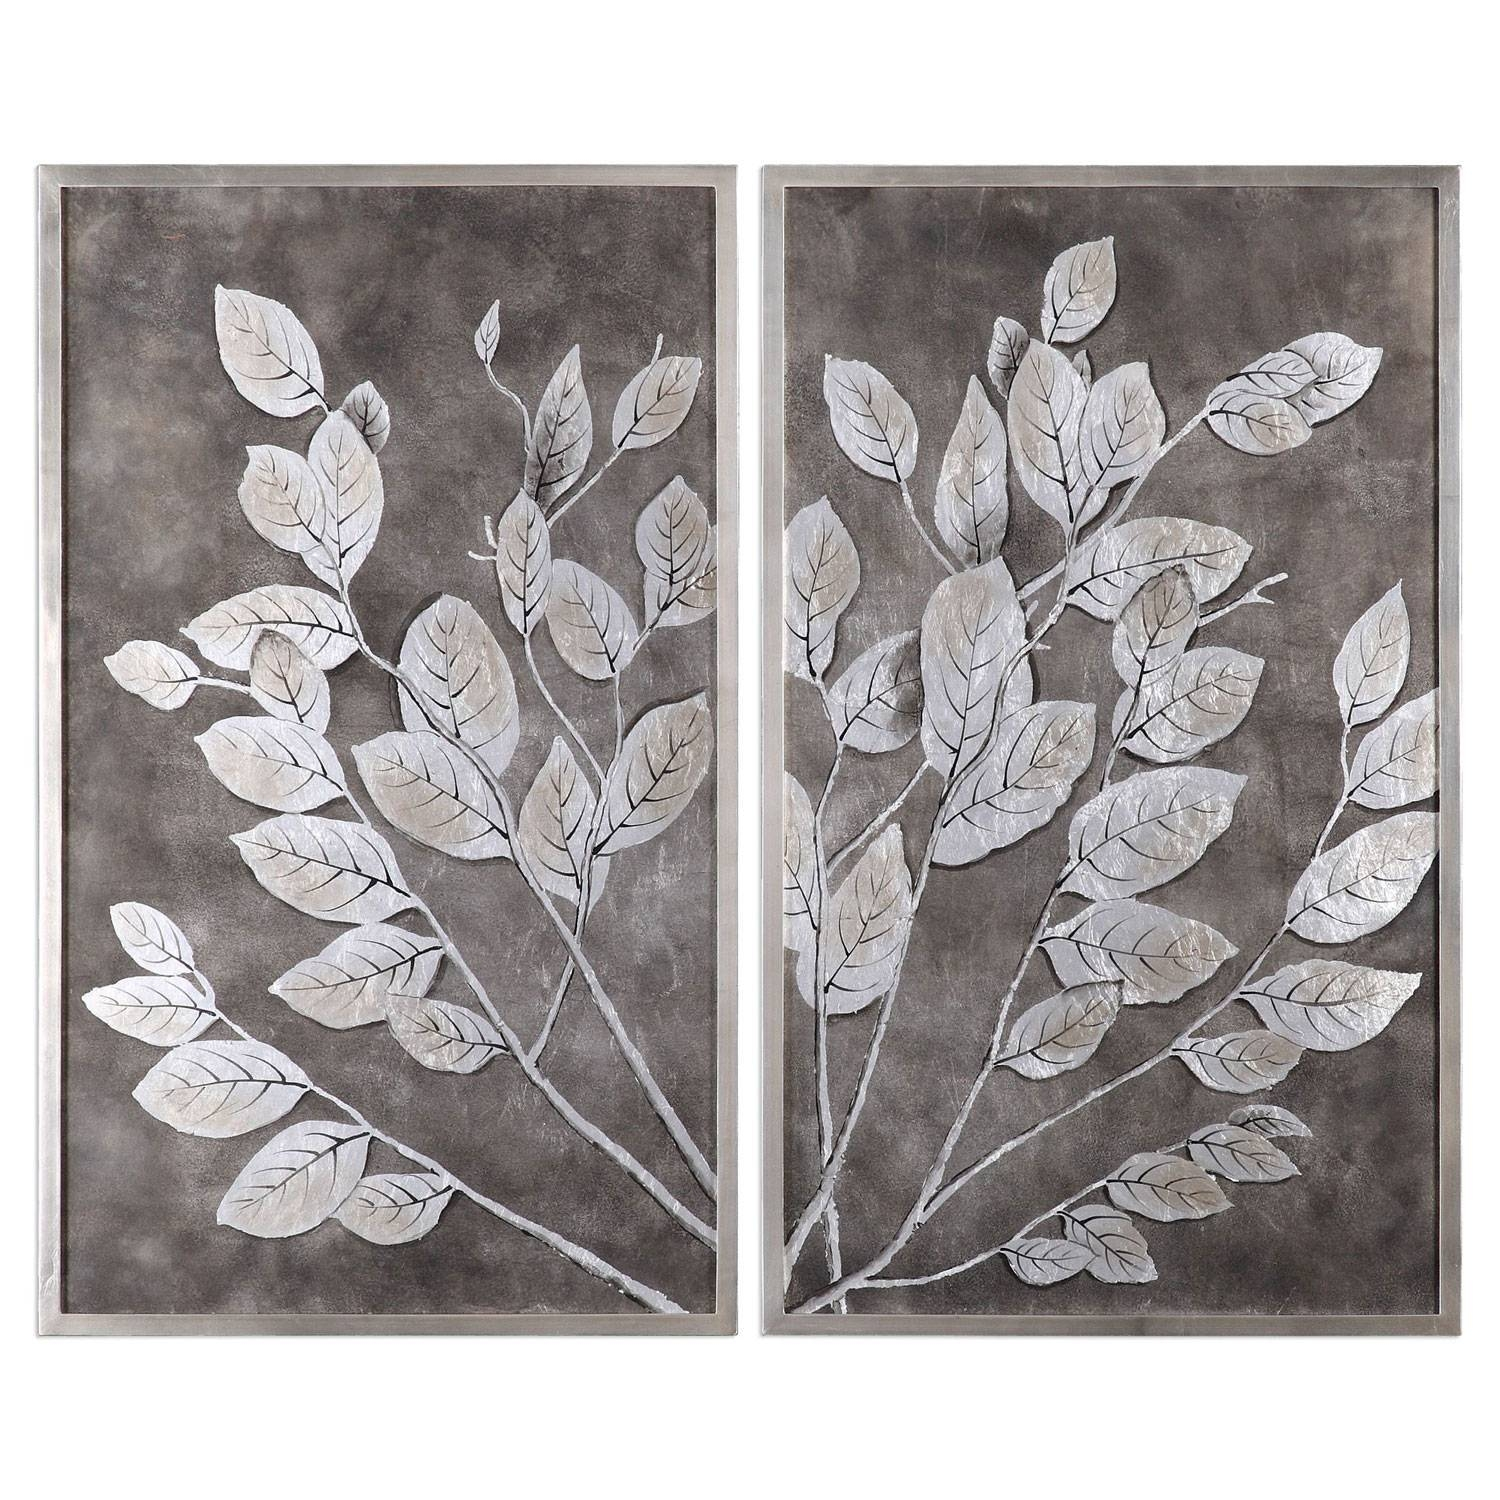 Money Tree Framed Art, Set Of 2 Uttermost Wall Art Wall Art Home Decor With Regard To Newest Black And White Wall Art Sets (View 10 of 20)